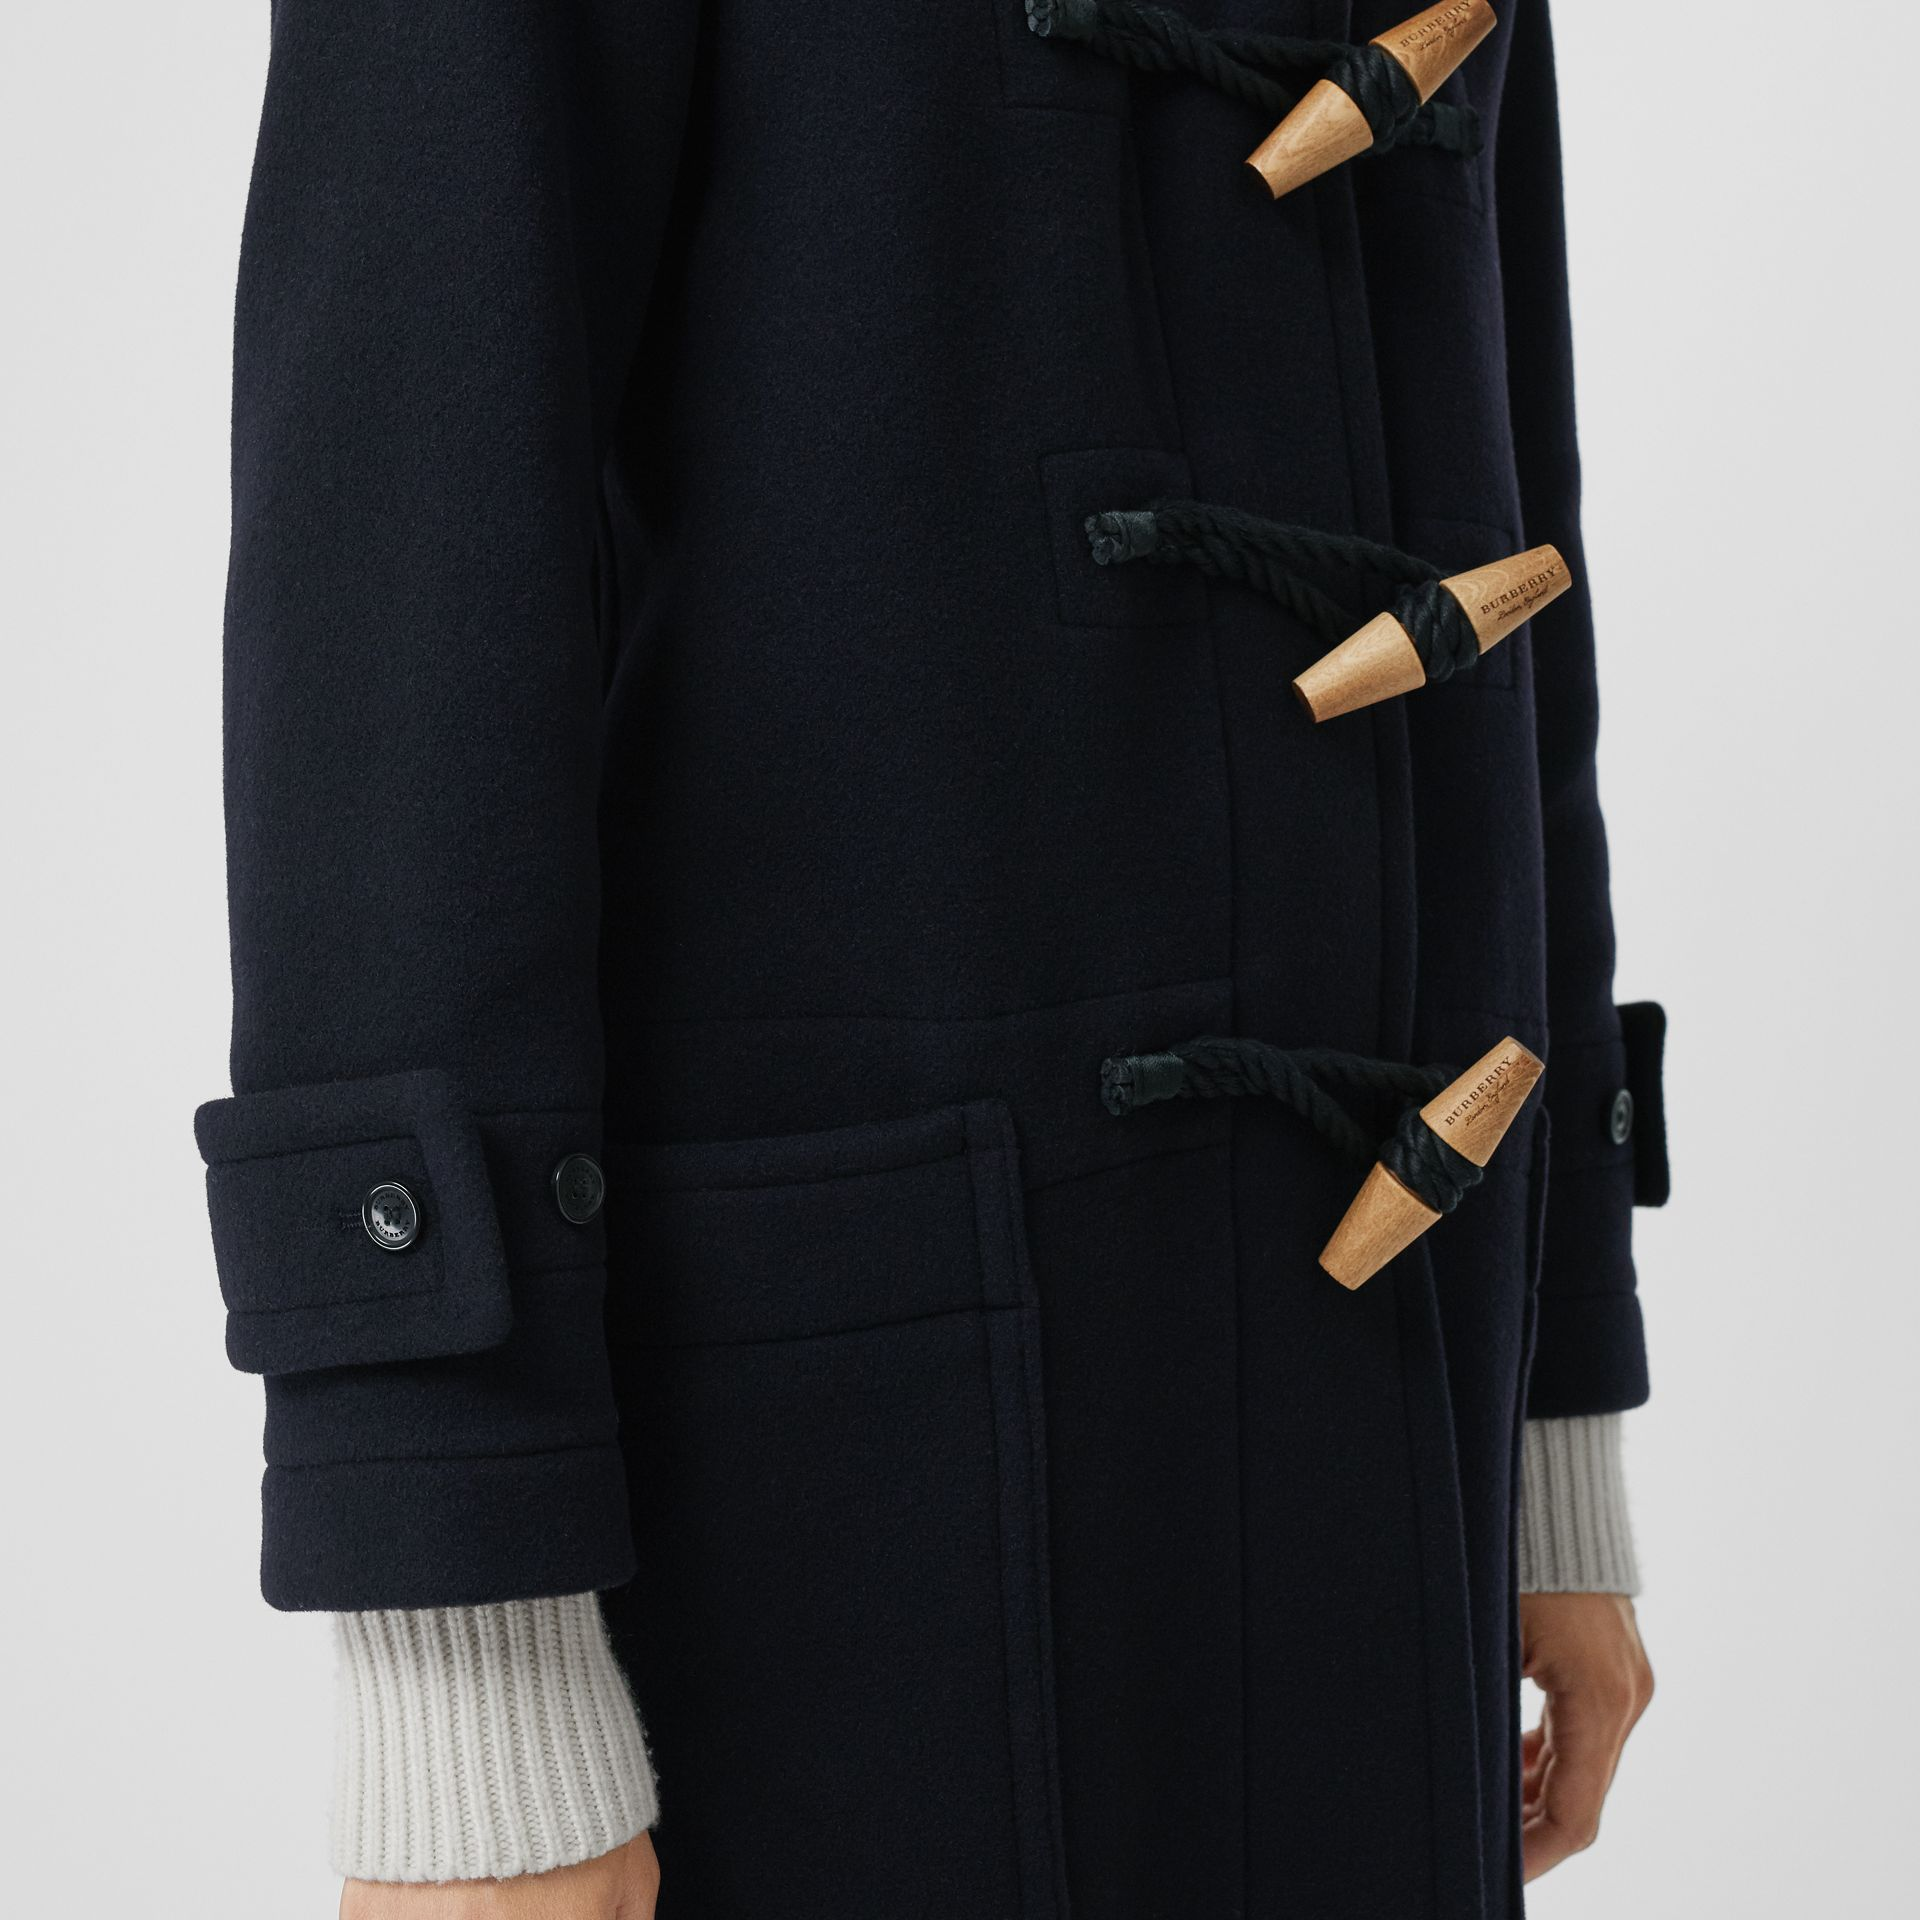 Wool Blend Oversized Duffle Coat in Navy - Women | Burberry United States - gallery image 1